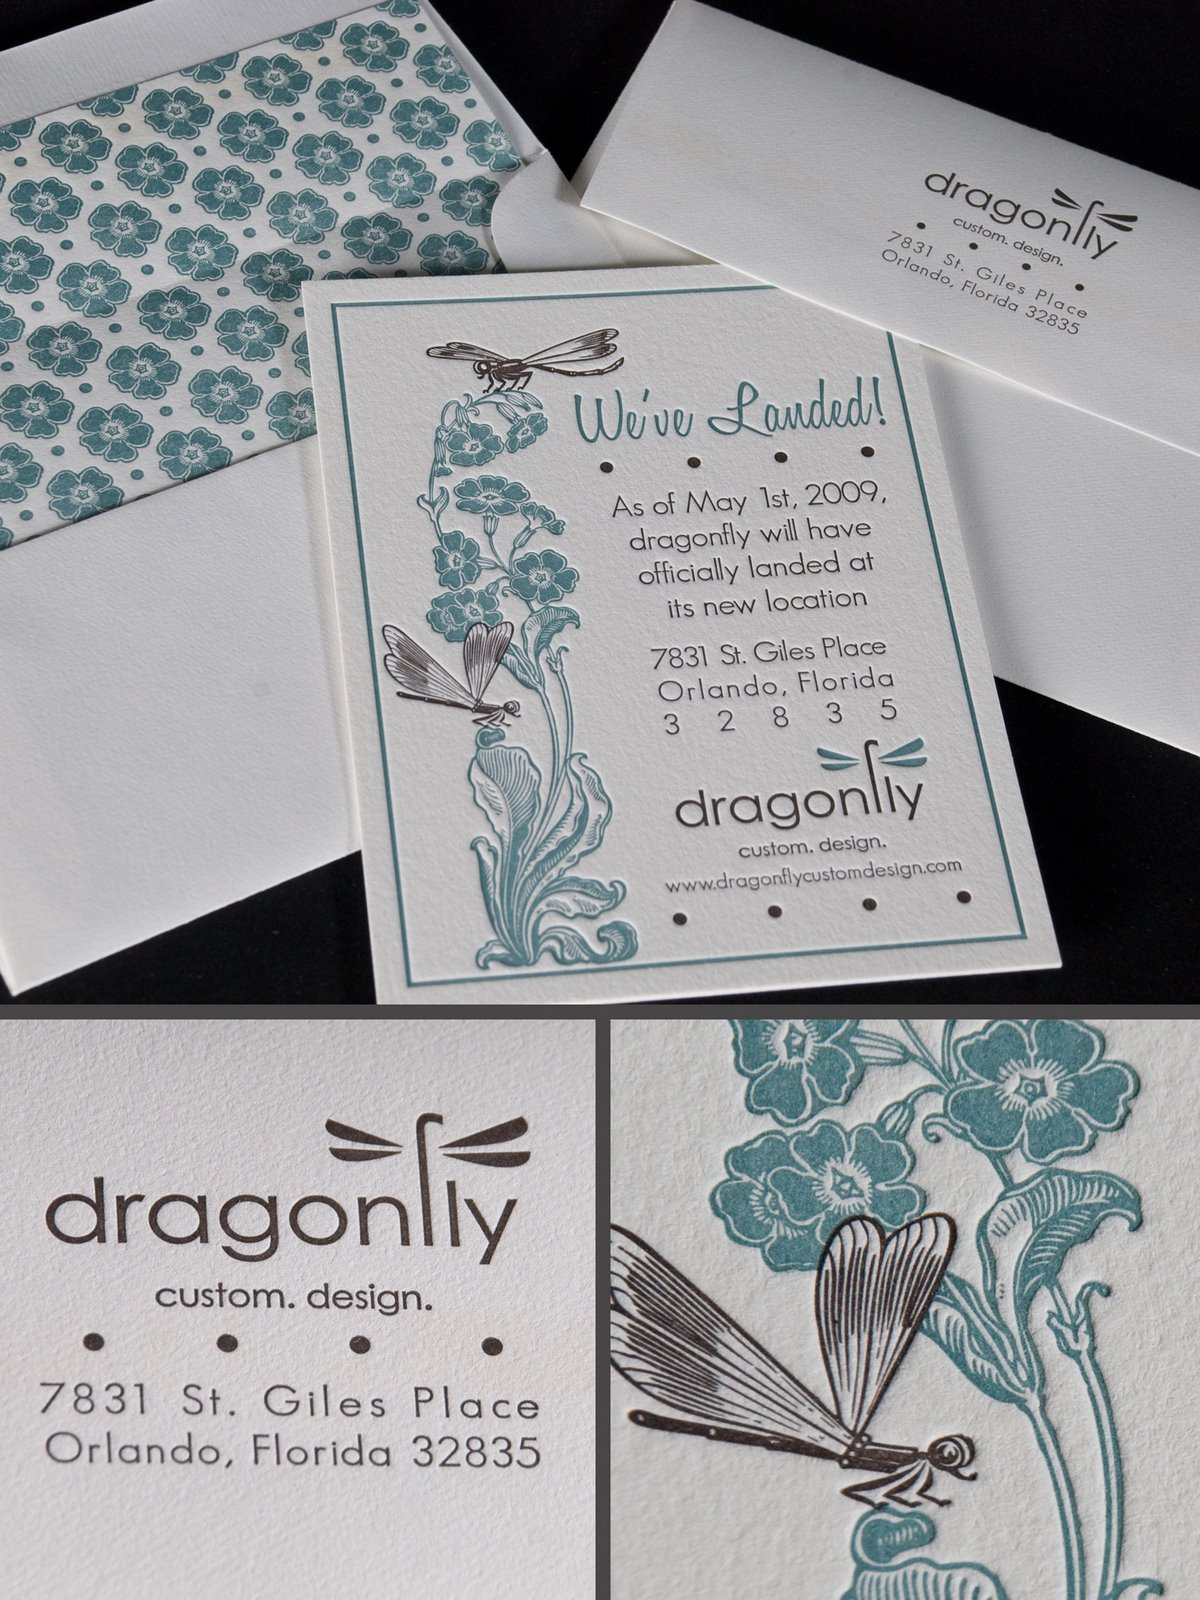 [dragonflydesign_2009.jpg]